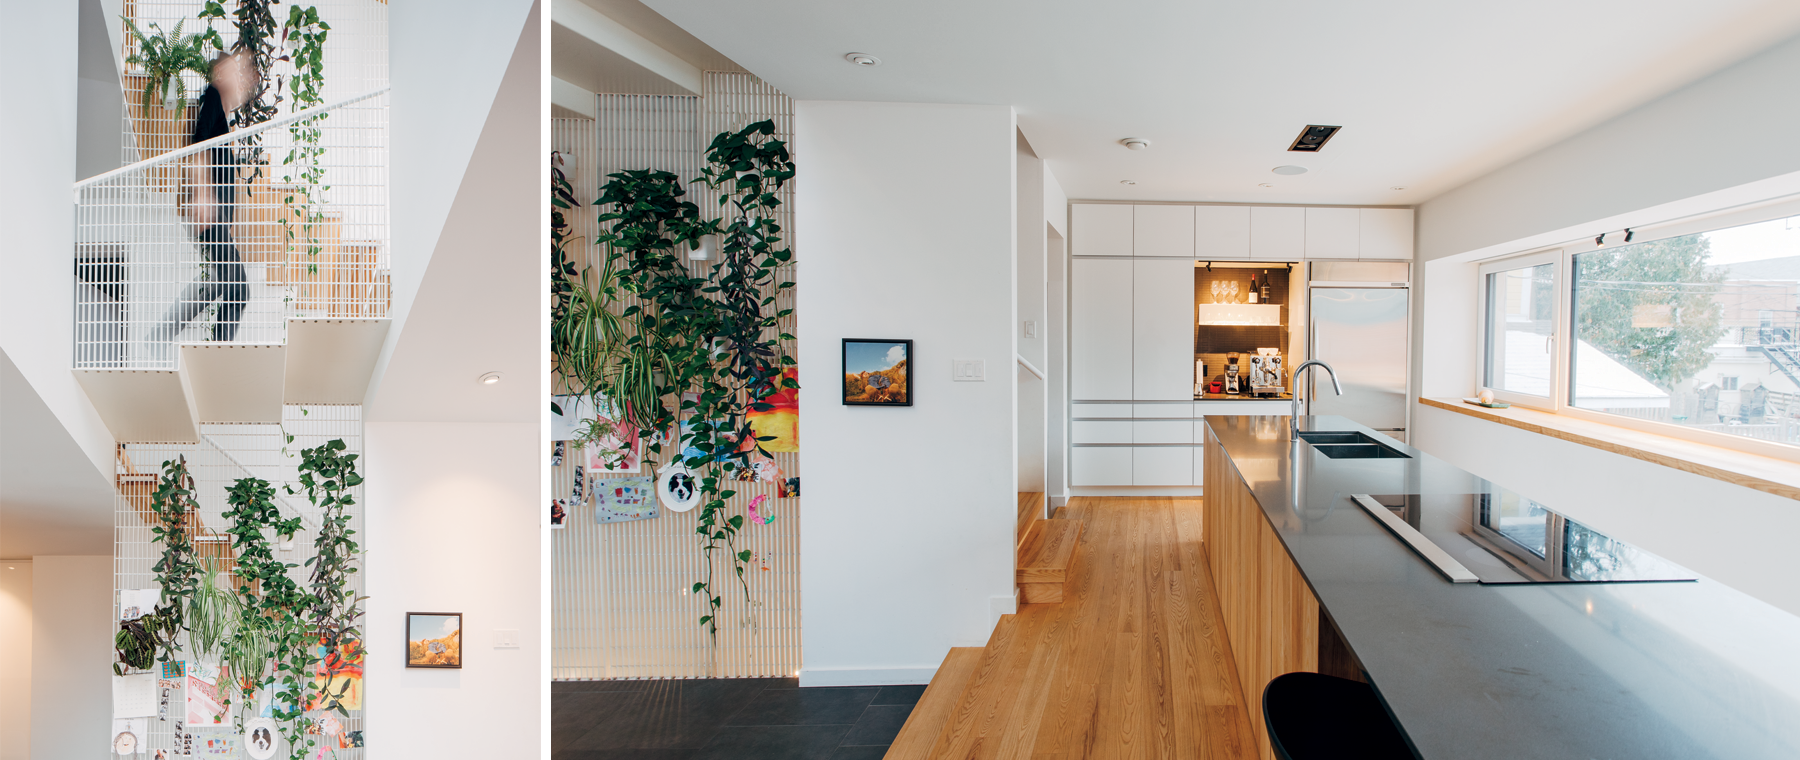 Healthy, Beautiful, and Energy Efficient: Inside a Passive House on Bayswater